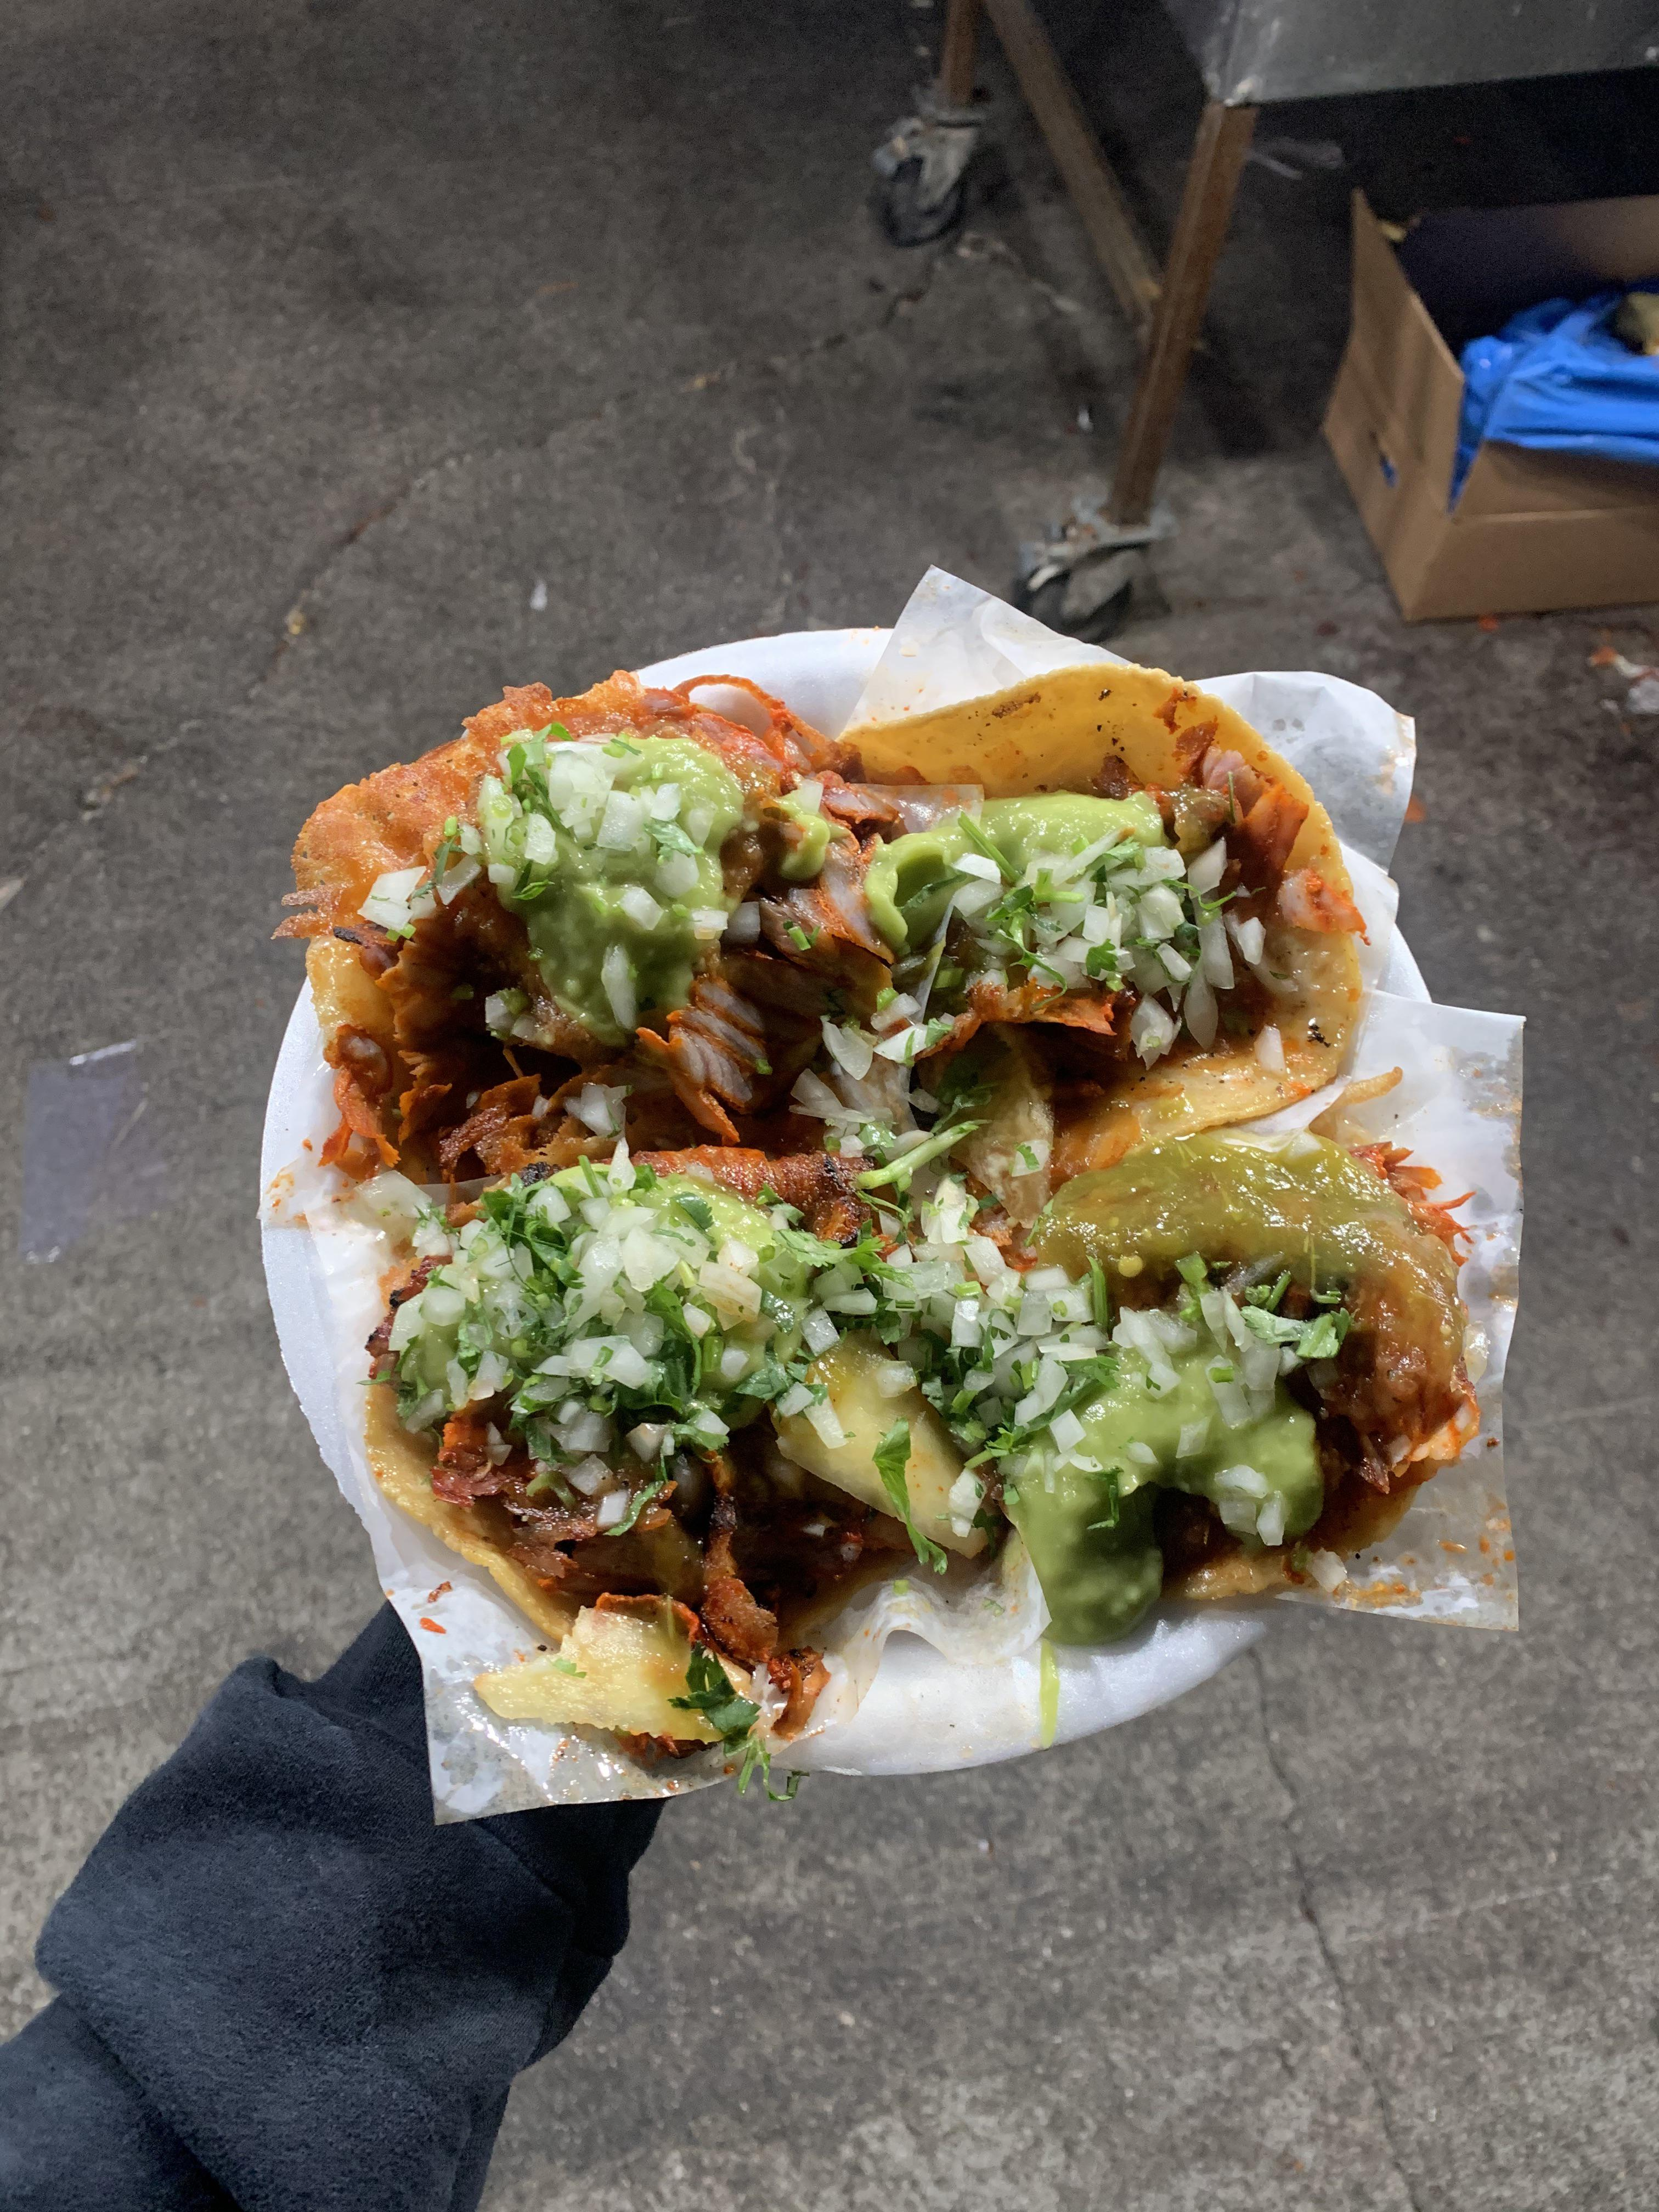 Al Pastor queso tacos with handmade tortilla! By far the best tacos in LA